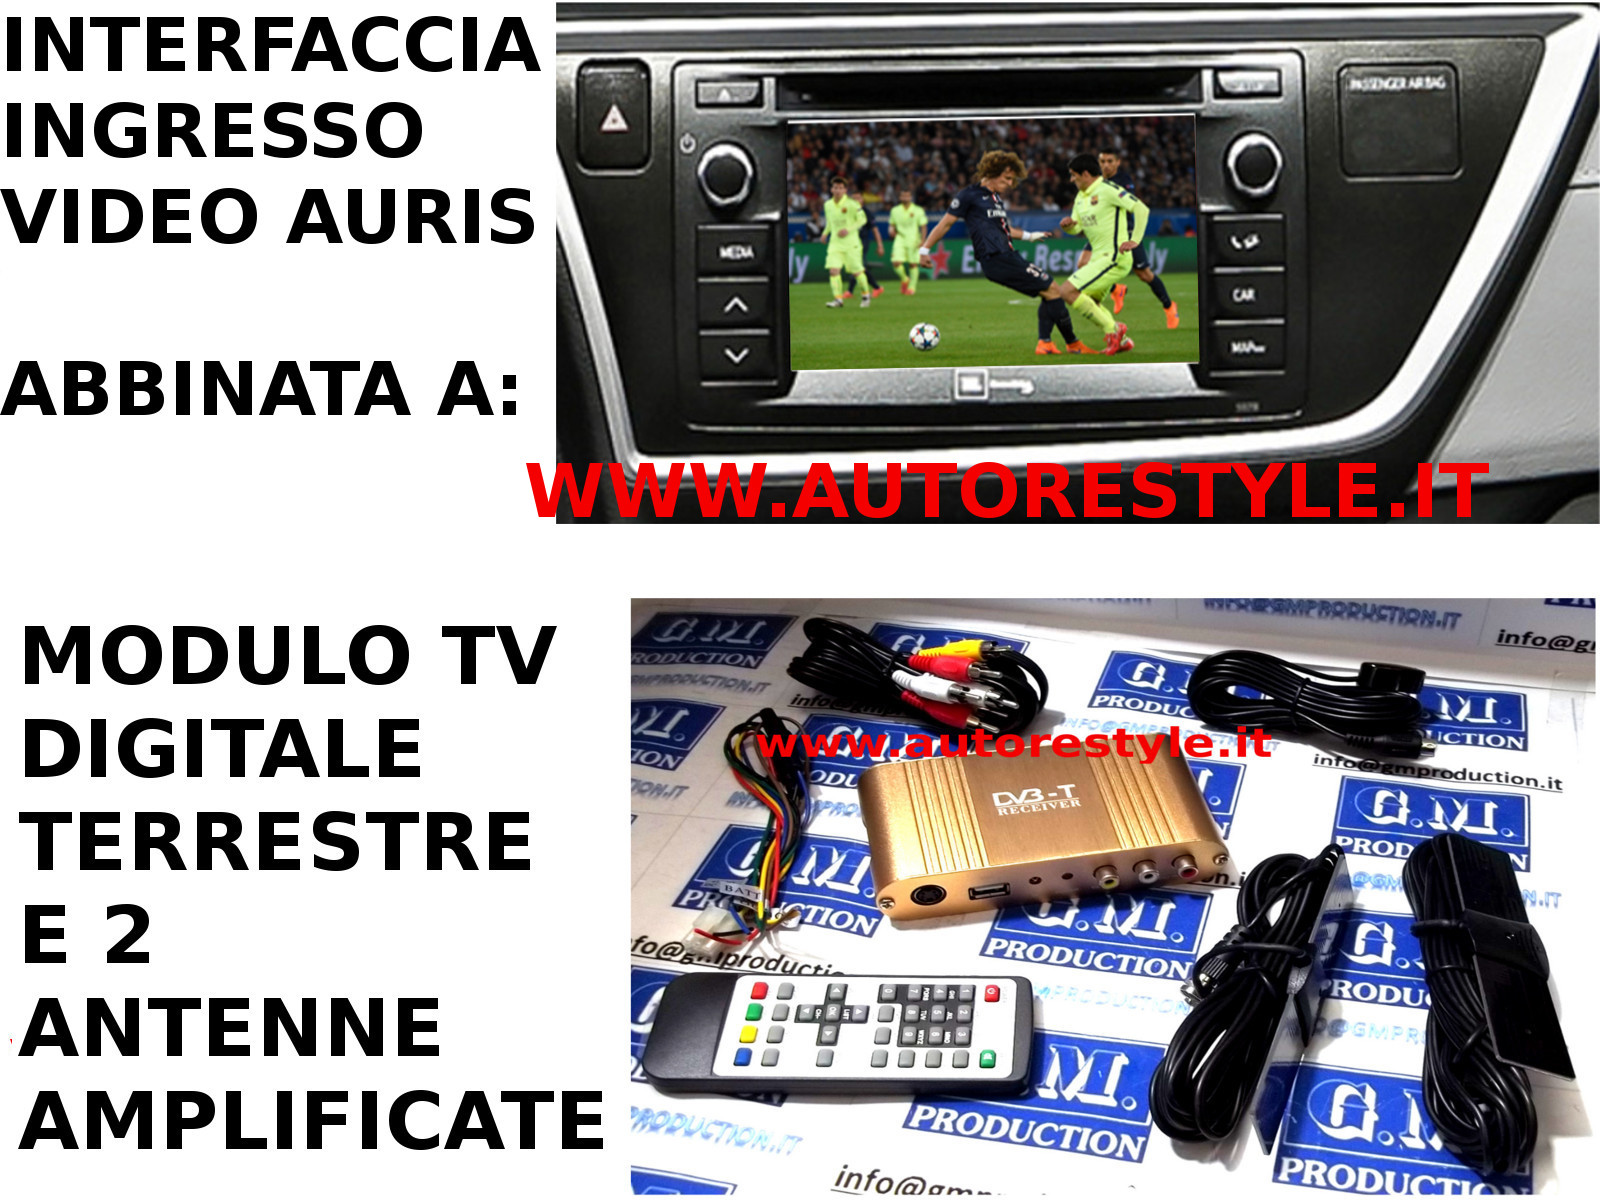 INGRESSO AUDIO VIDEO RCA (CVBS ) SU MONITOR DI SERIE TOYOTA AURIS 2012 AURIS HYBRID 2012 AURIS TS 2013 E TV DIGITALE TERRESTRE